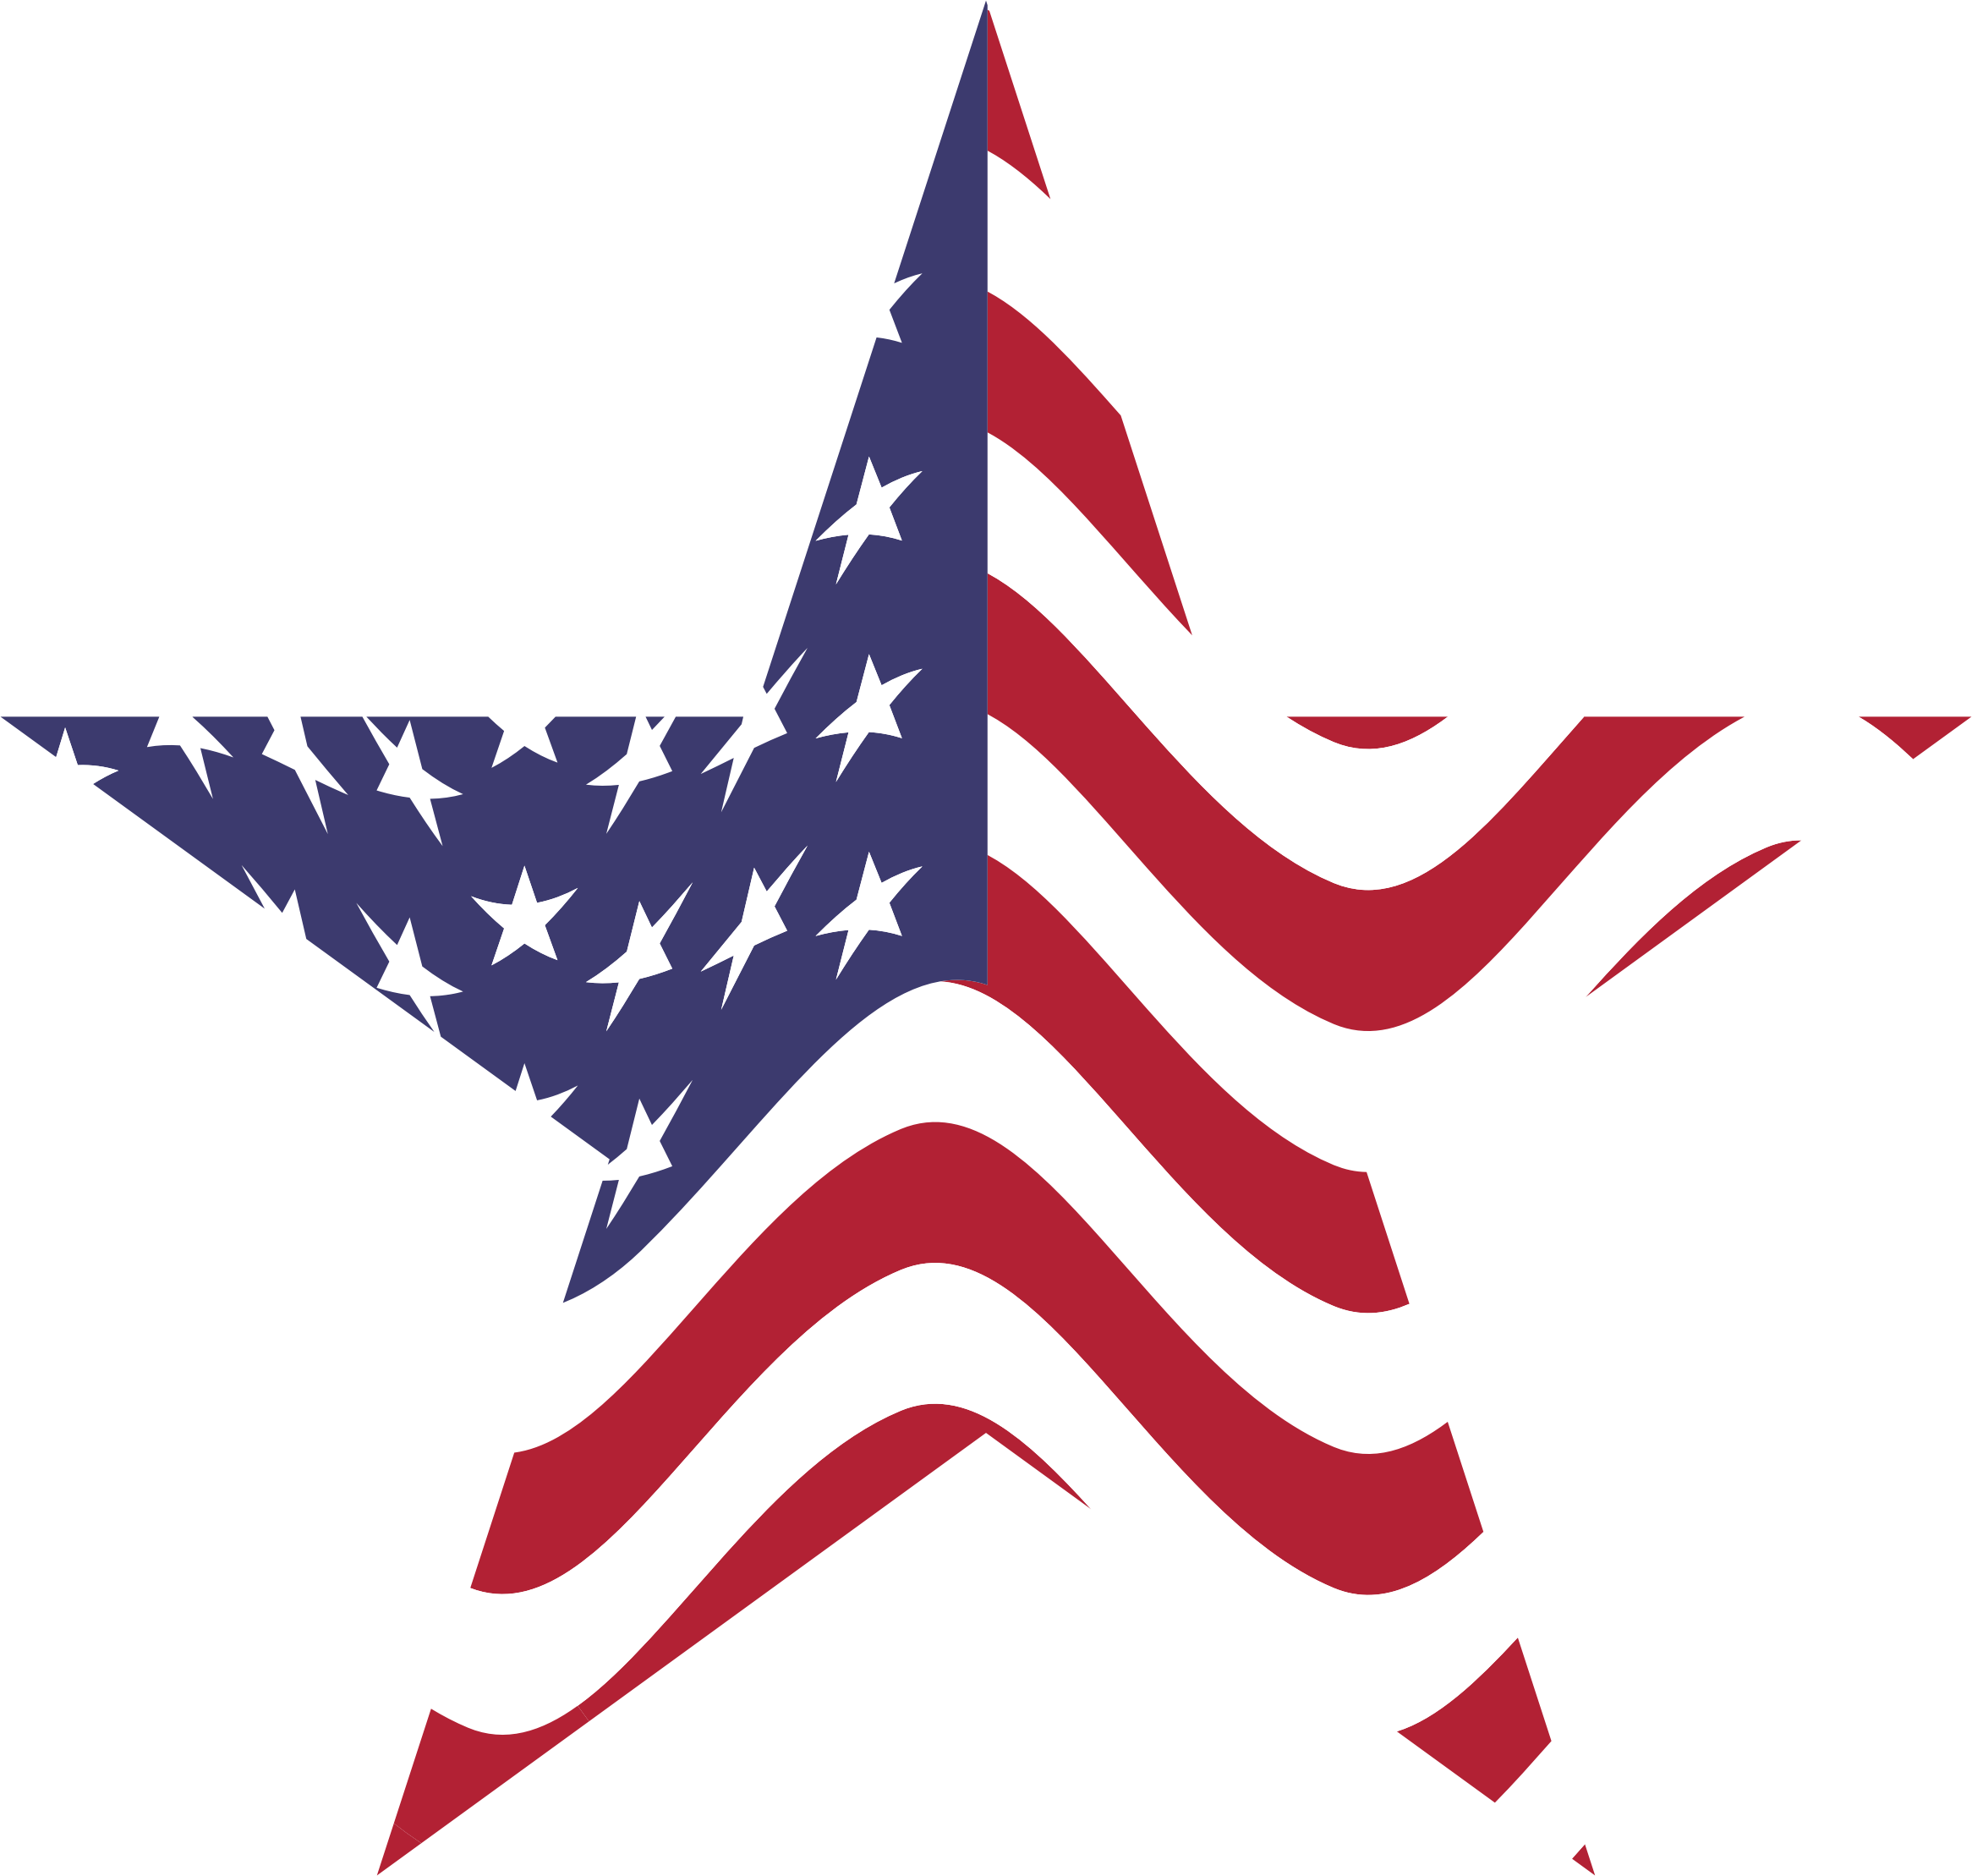 American flag star. Clipart wikiclipart